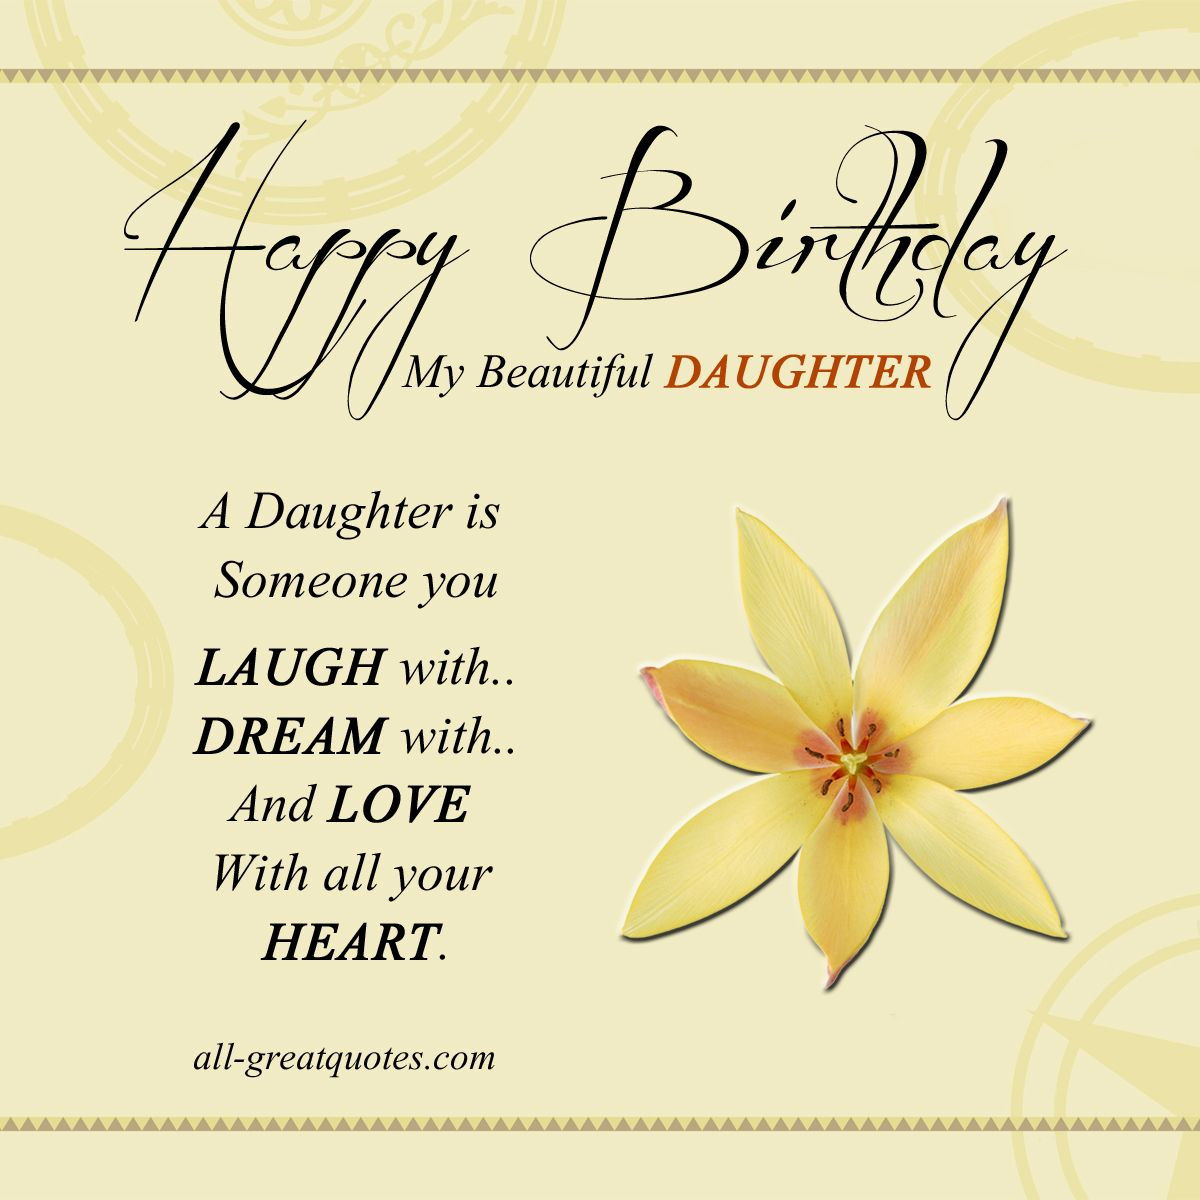 Best ideas about Birthday Wishes For Adult Daughter . Save or Pin Happy Birthday To My Beautiful Daughter Animated Now.